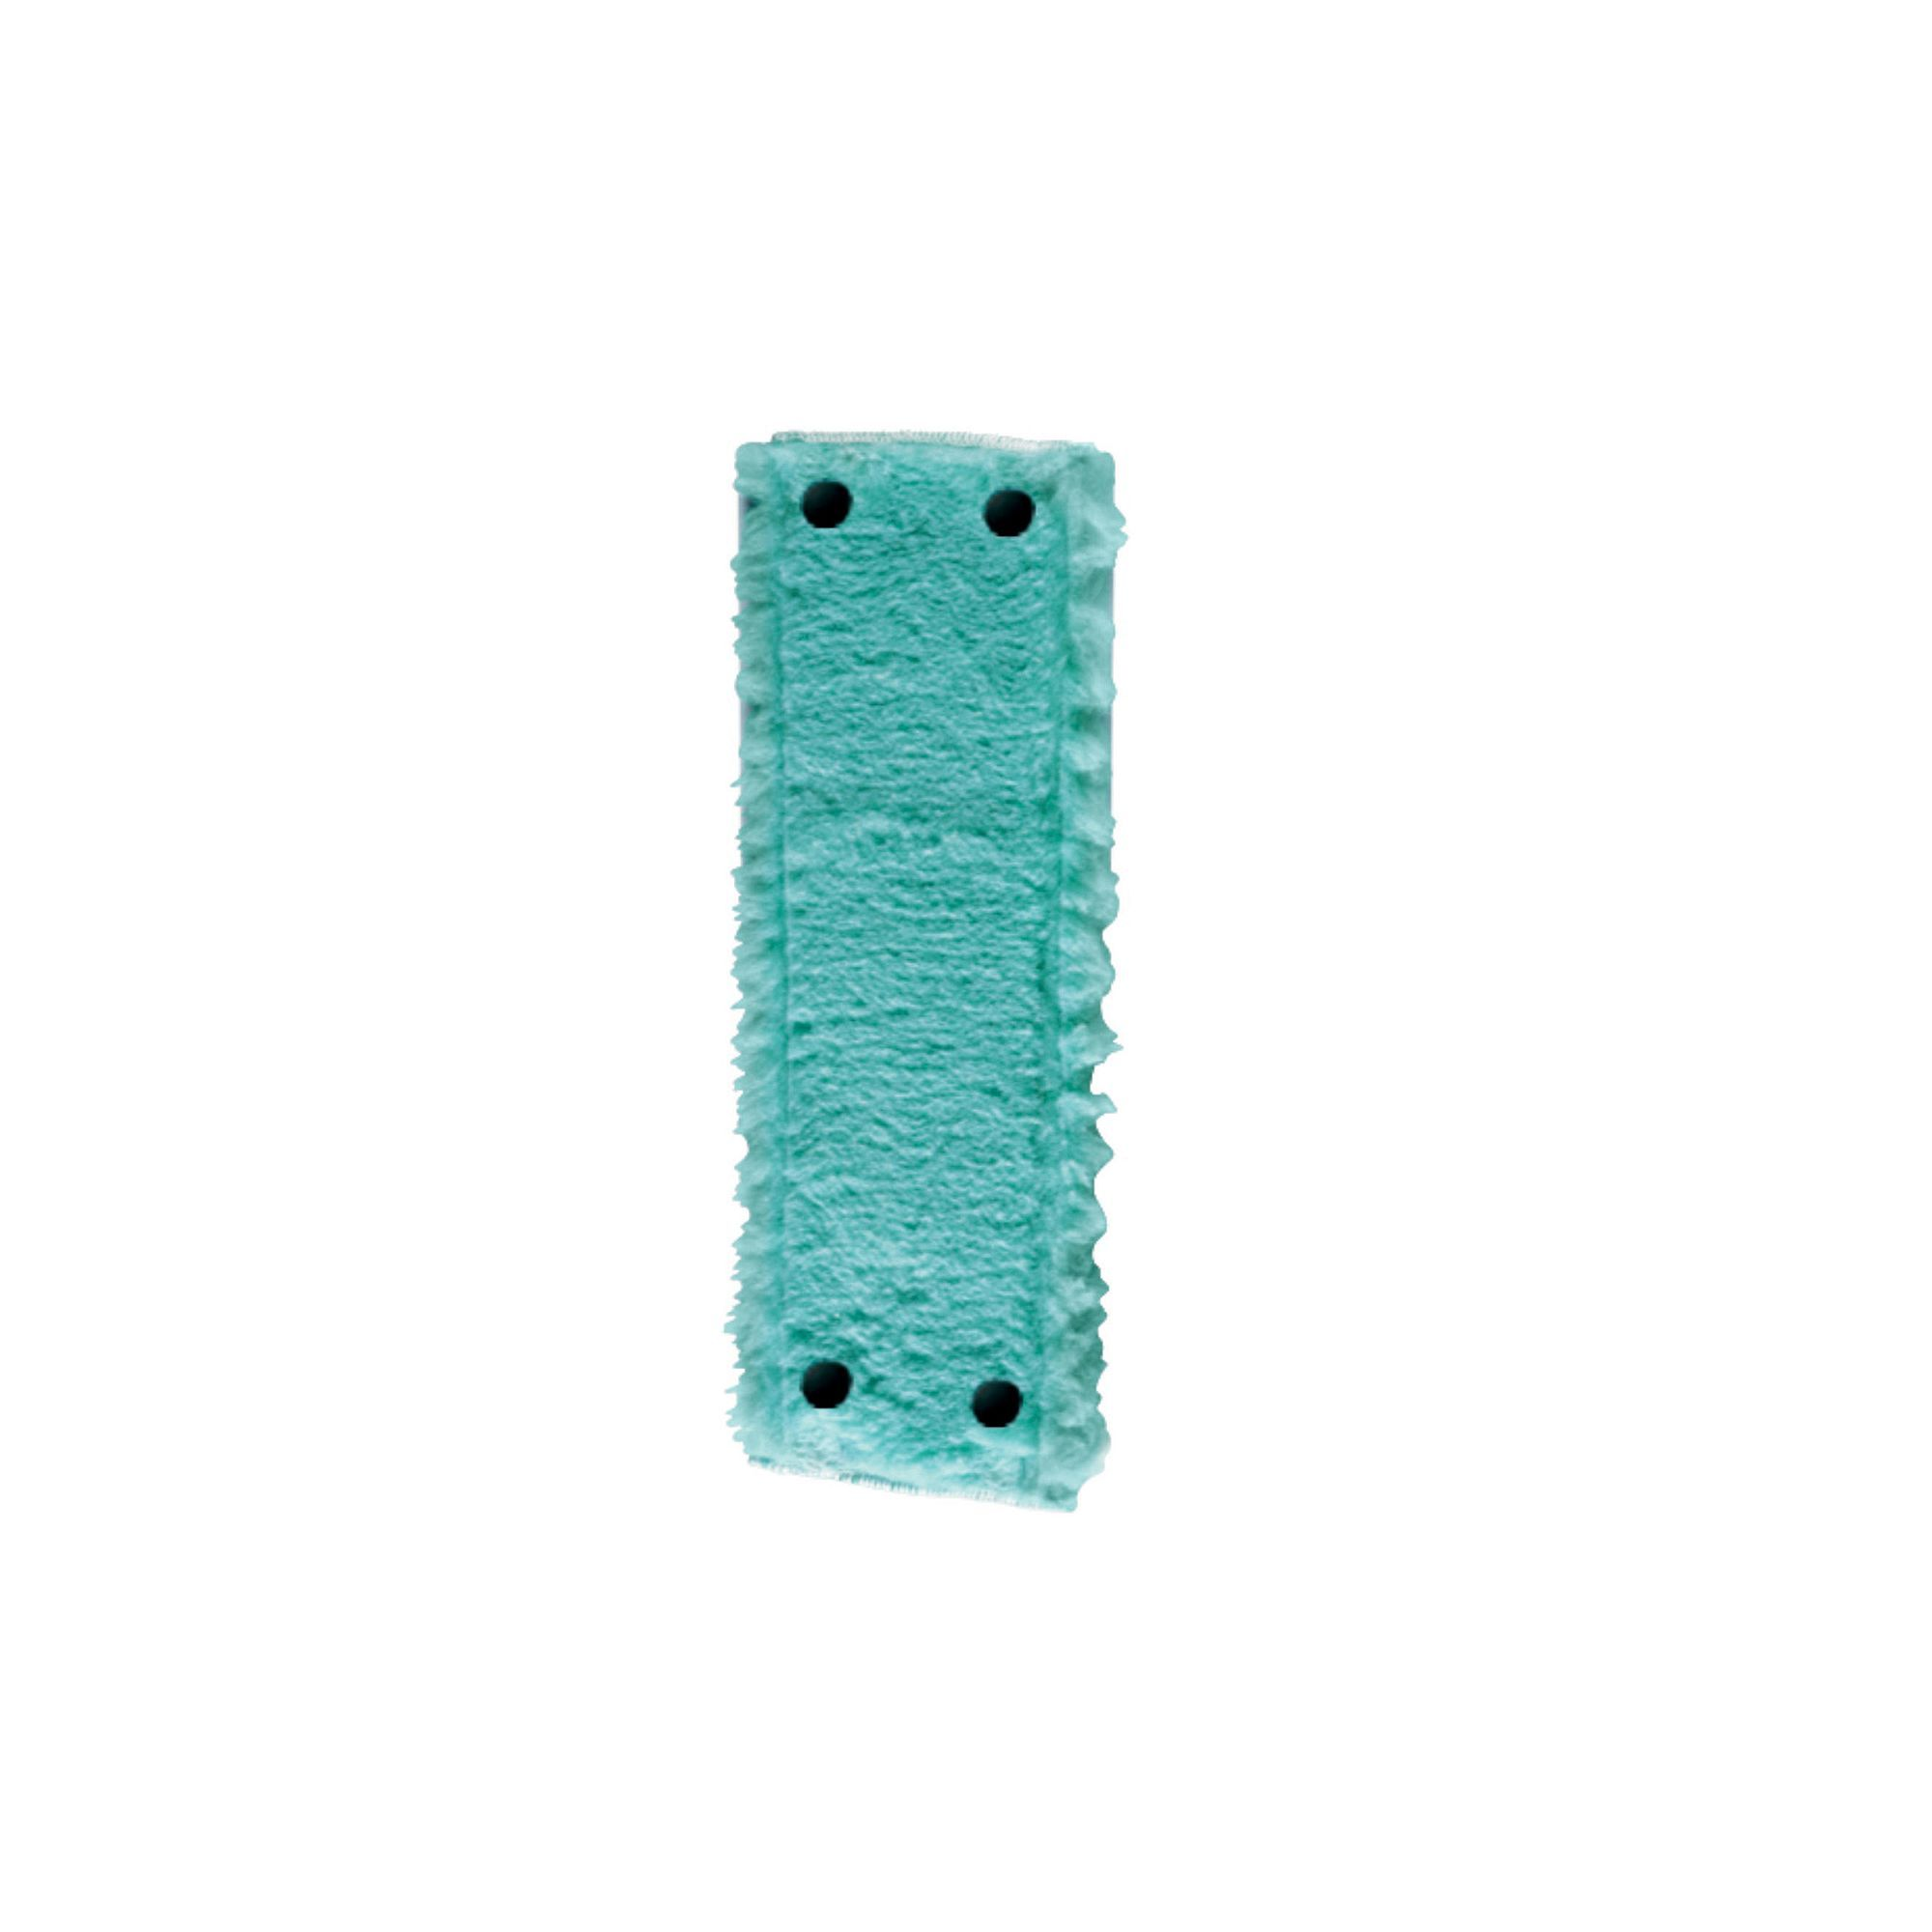 Leifheit Clean Twist Sweeper Mop Xl Replacement Dry Duster Pad Blue X Large Household Cleaning Supplies Cleaning